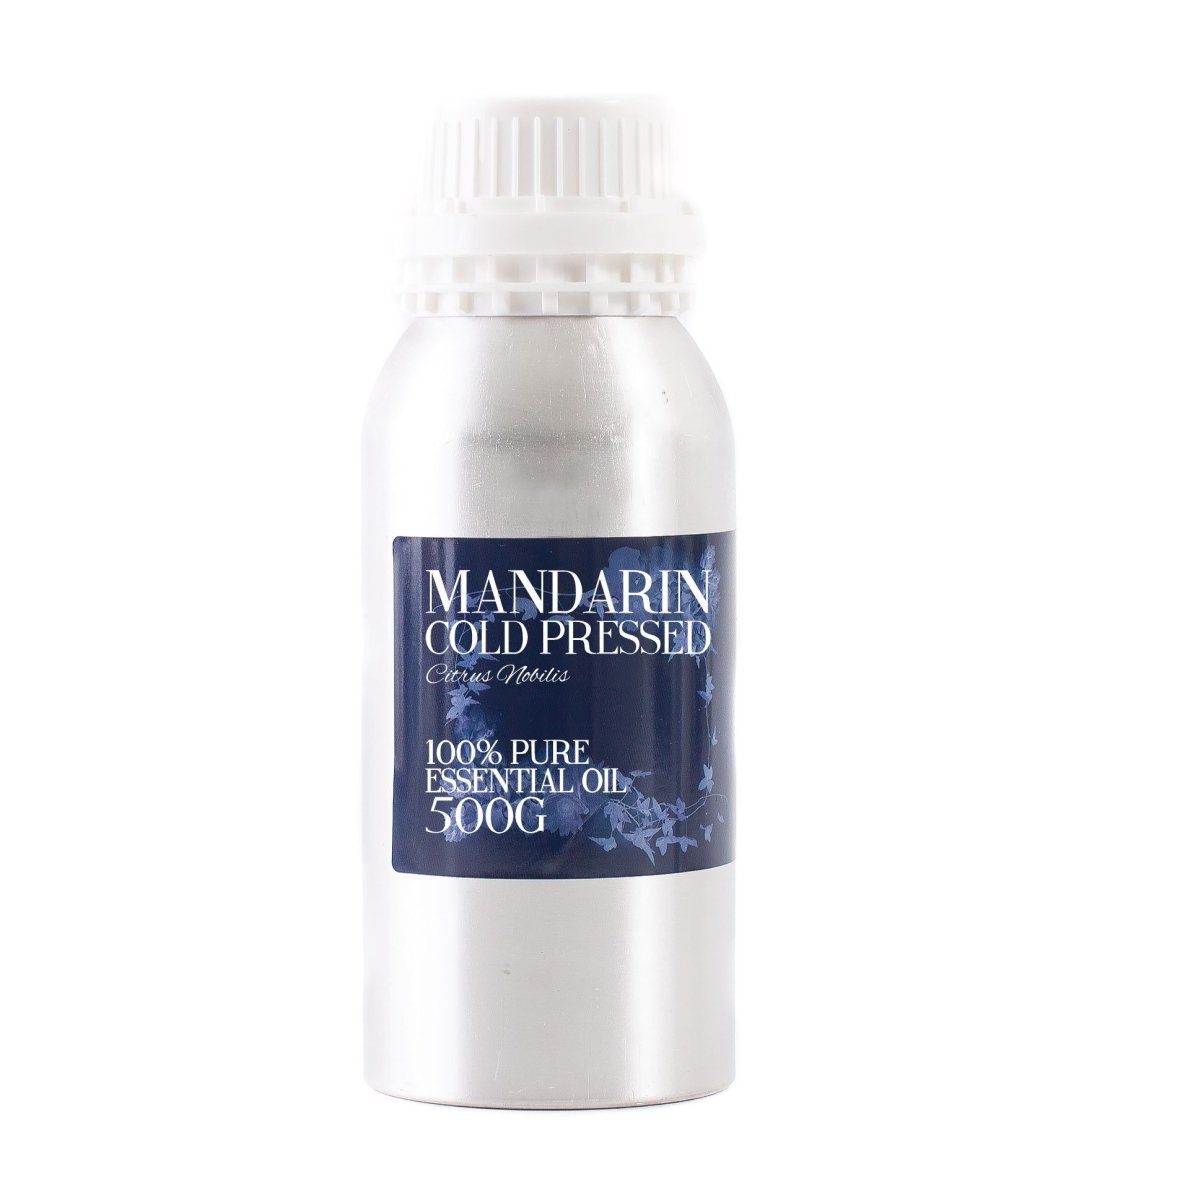 Mandarin Cold Pressed Essential Oil - Mystic Moments UK